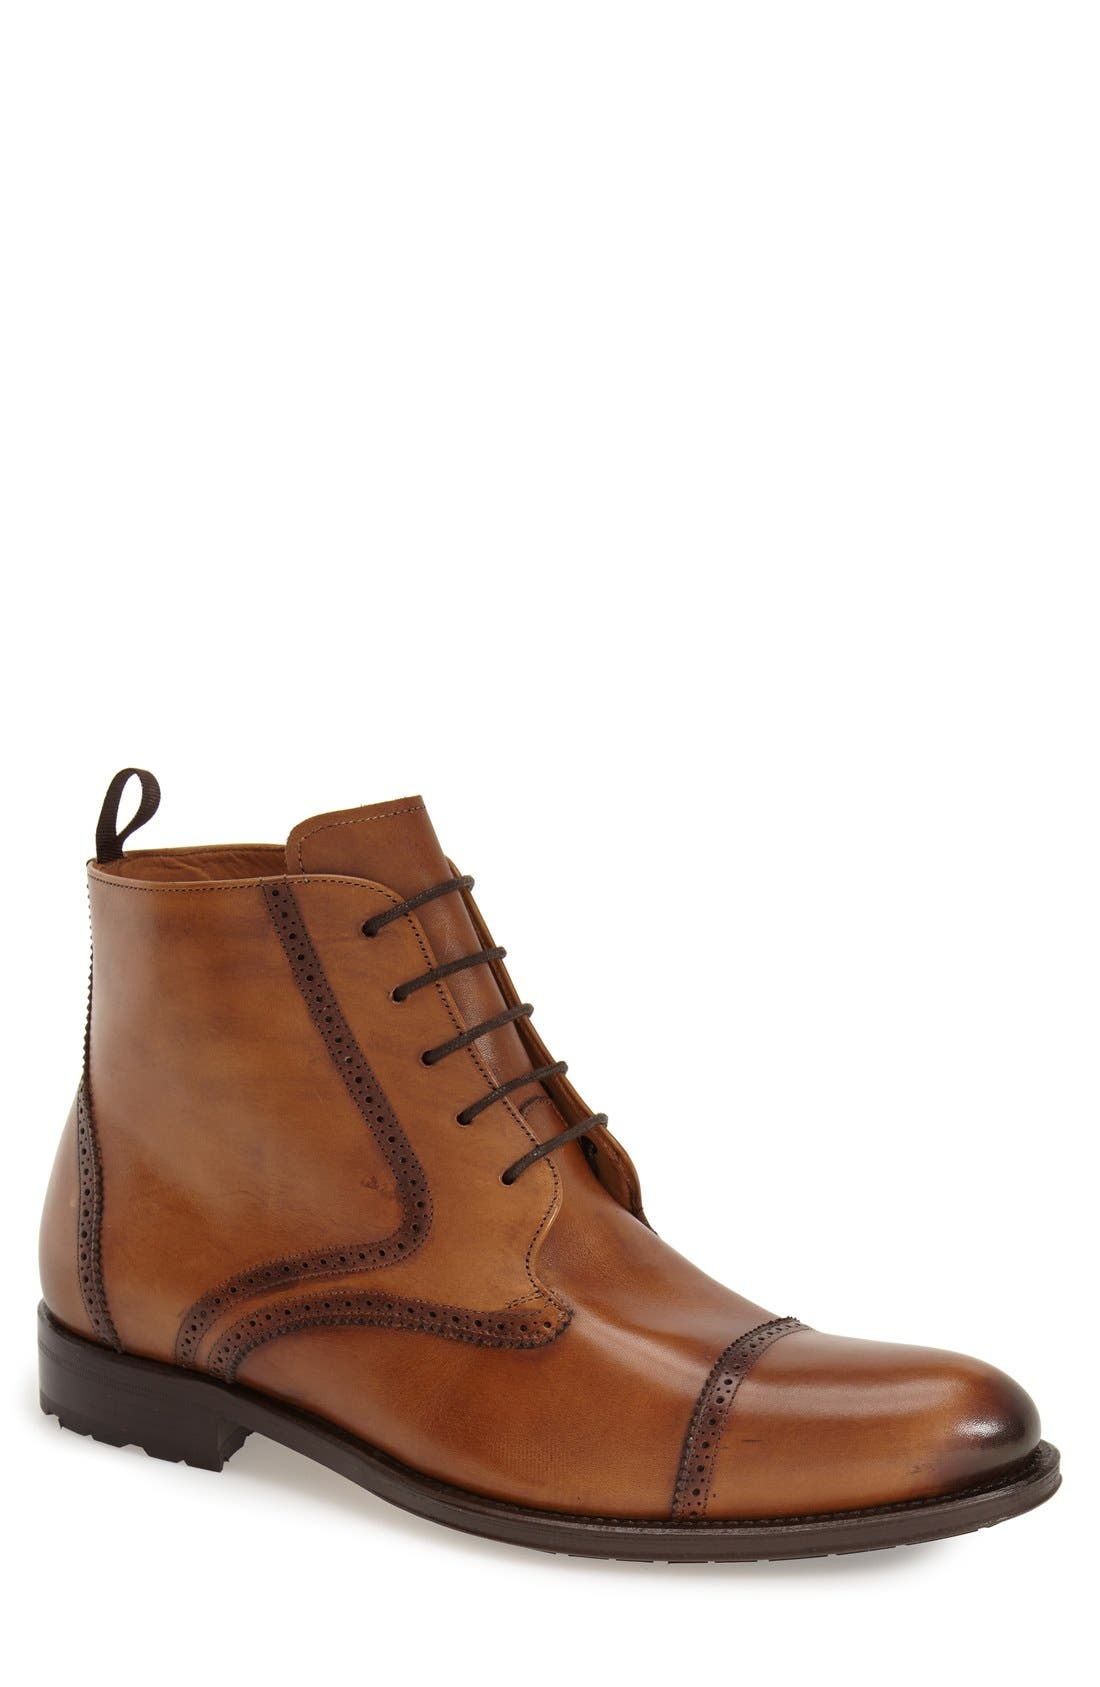 'Breman' Boot,                         Main,                         color, 235